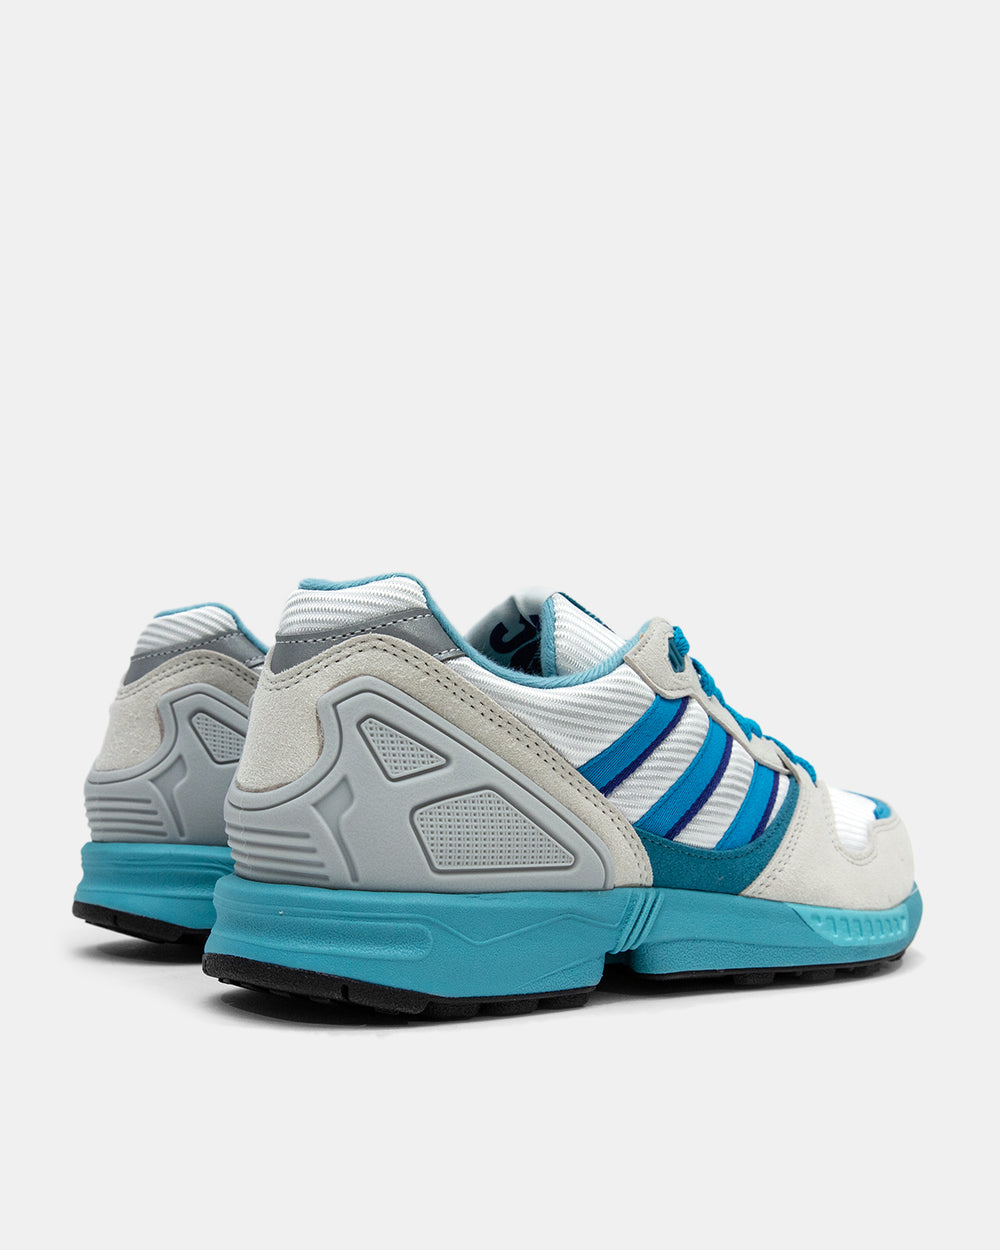 adidas Consortium - ZX 5000 '30 Years of Torsion' (White | Blue)